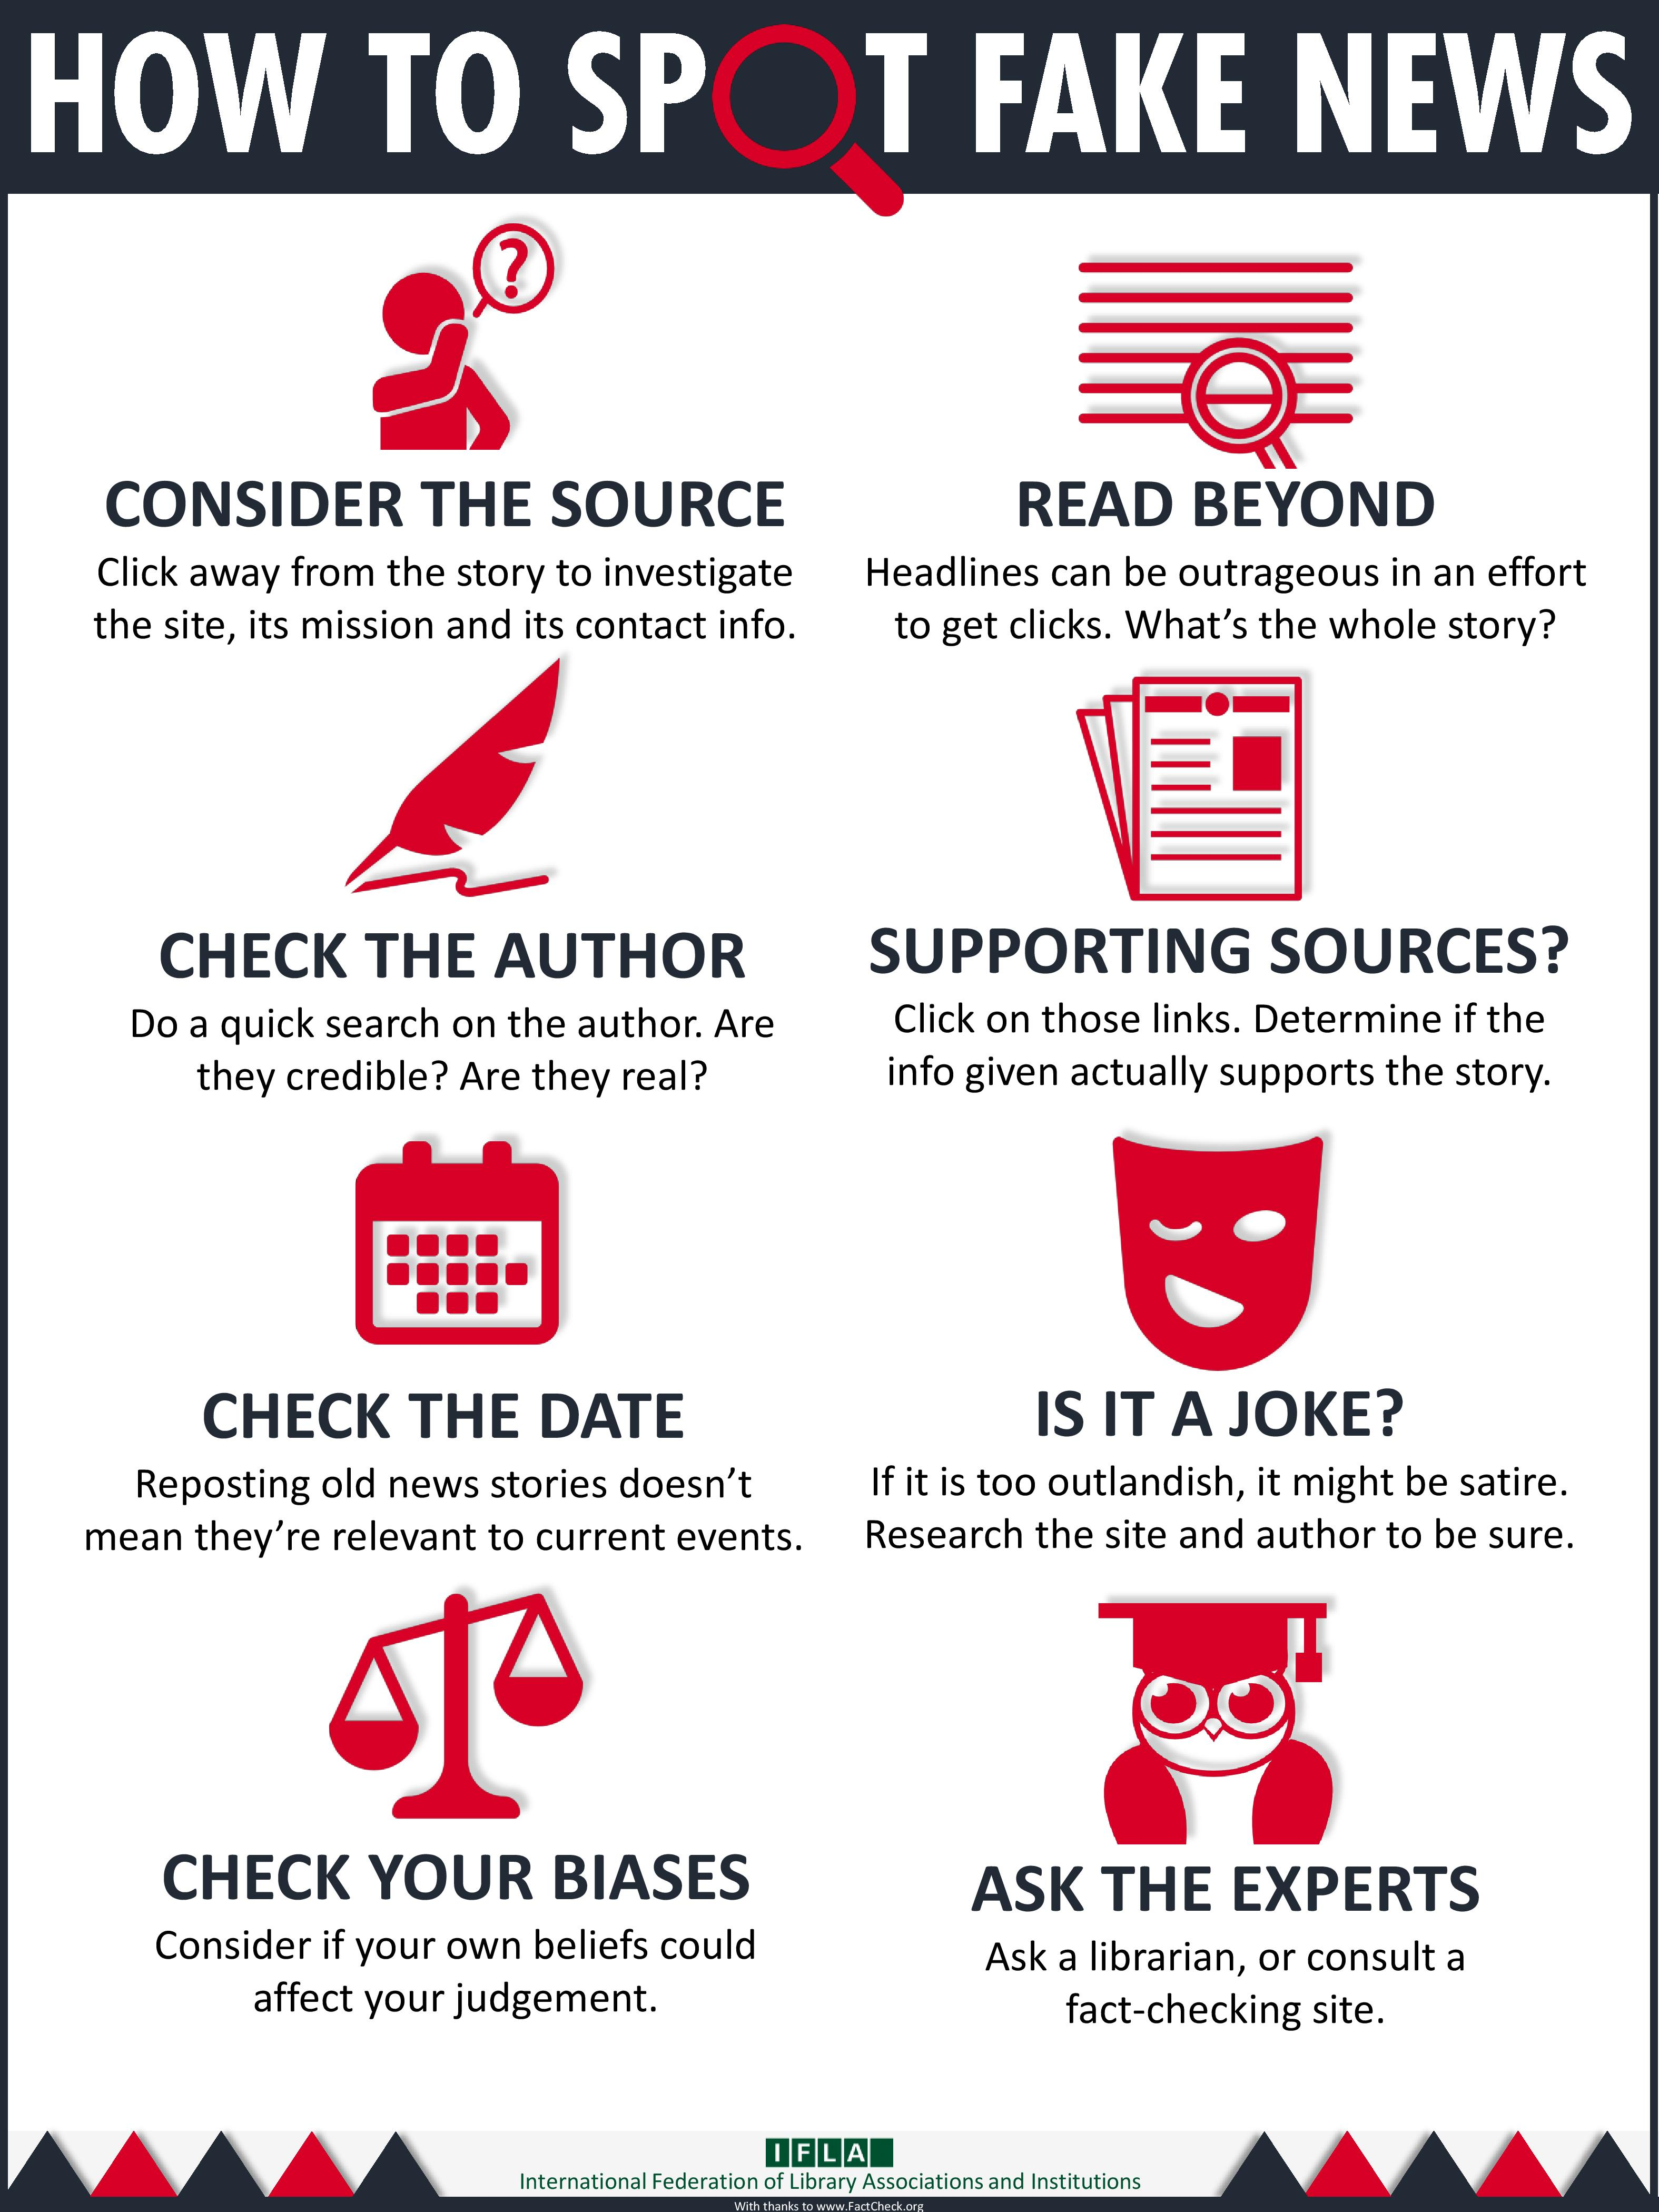 How to Spot Fake News. Consider the Source. Read Beyond. Check the Author. Supporting Sources?  Check the Date. Is It a Joke? Check Your Biases. Ask the Experts.